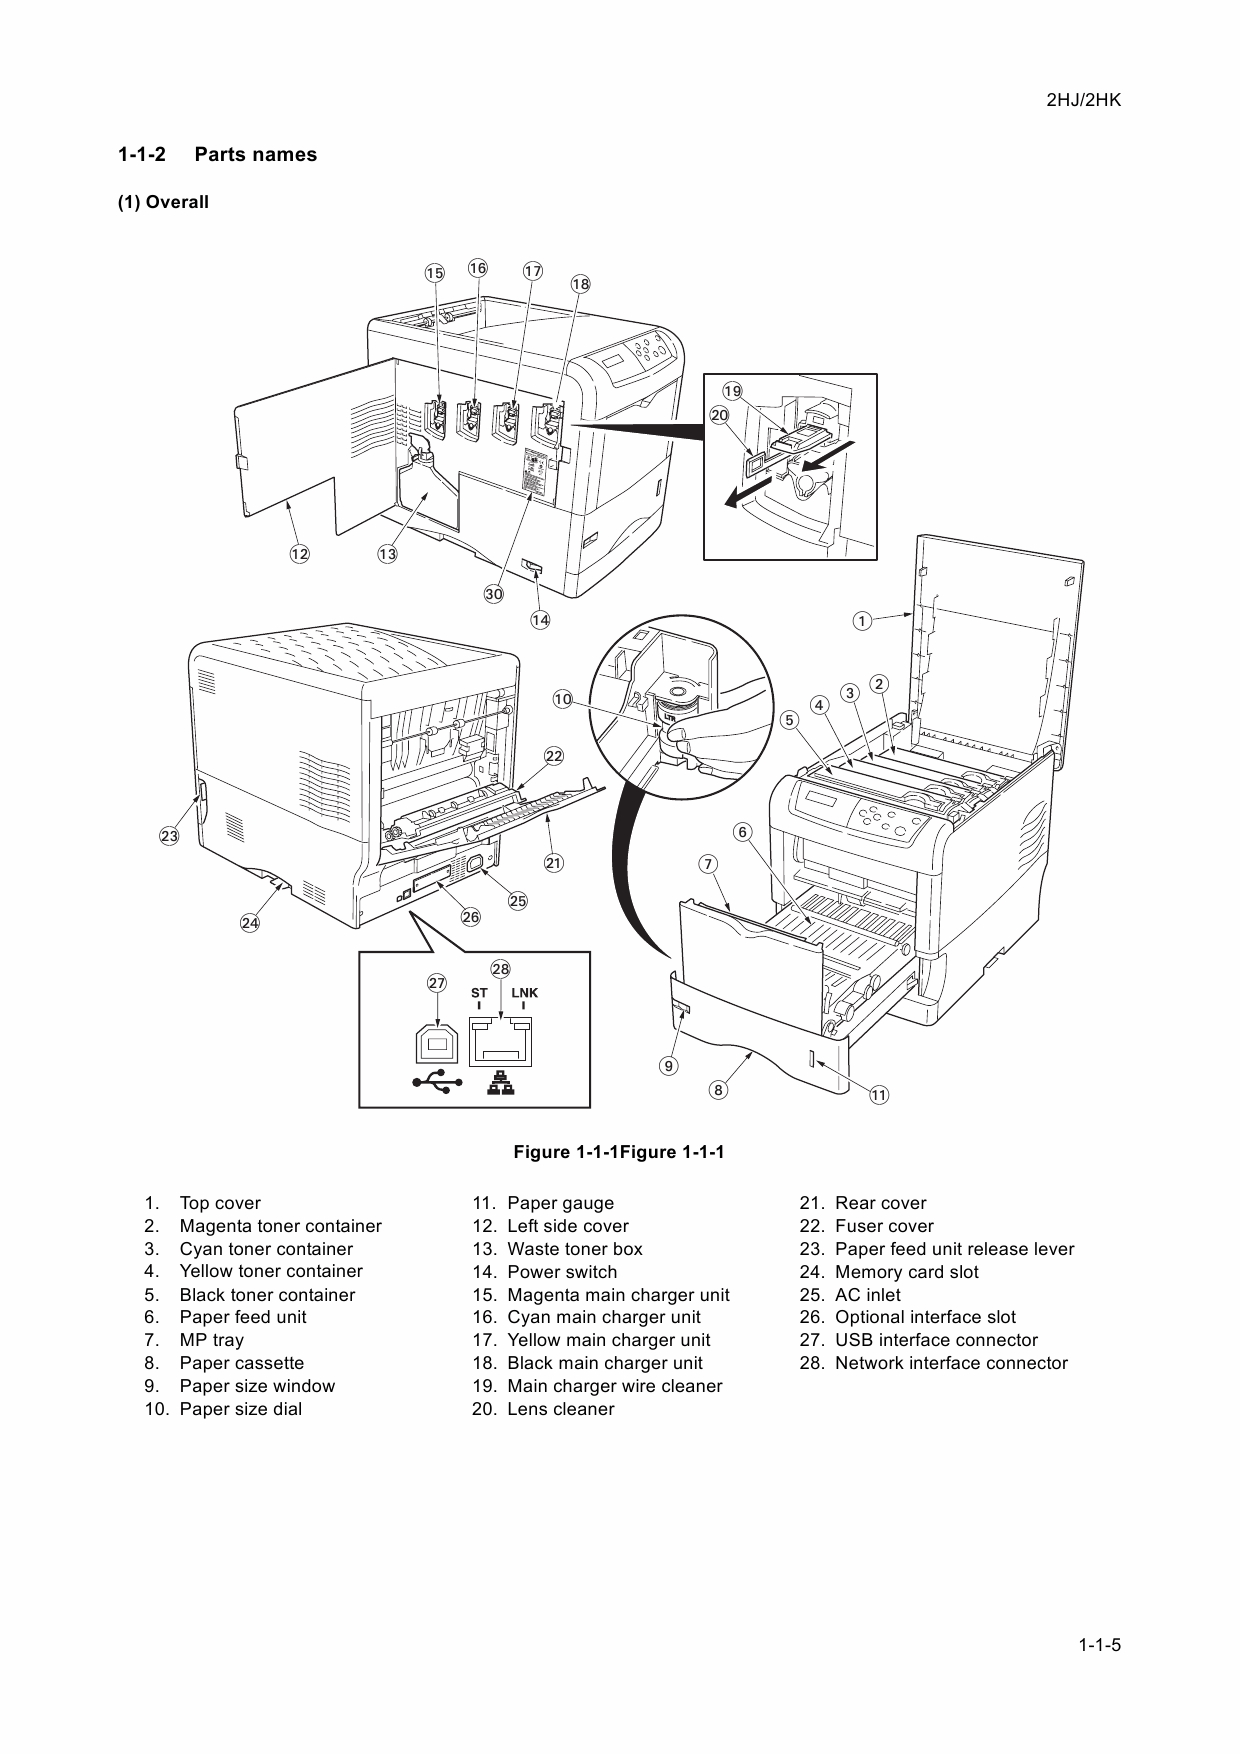 KYOCERA ColorLaserPrinter FS-C5015N C5025N Service Manual